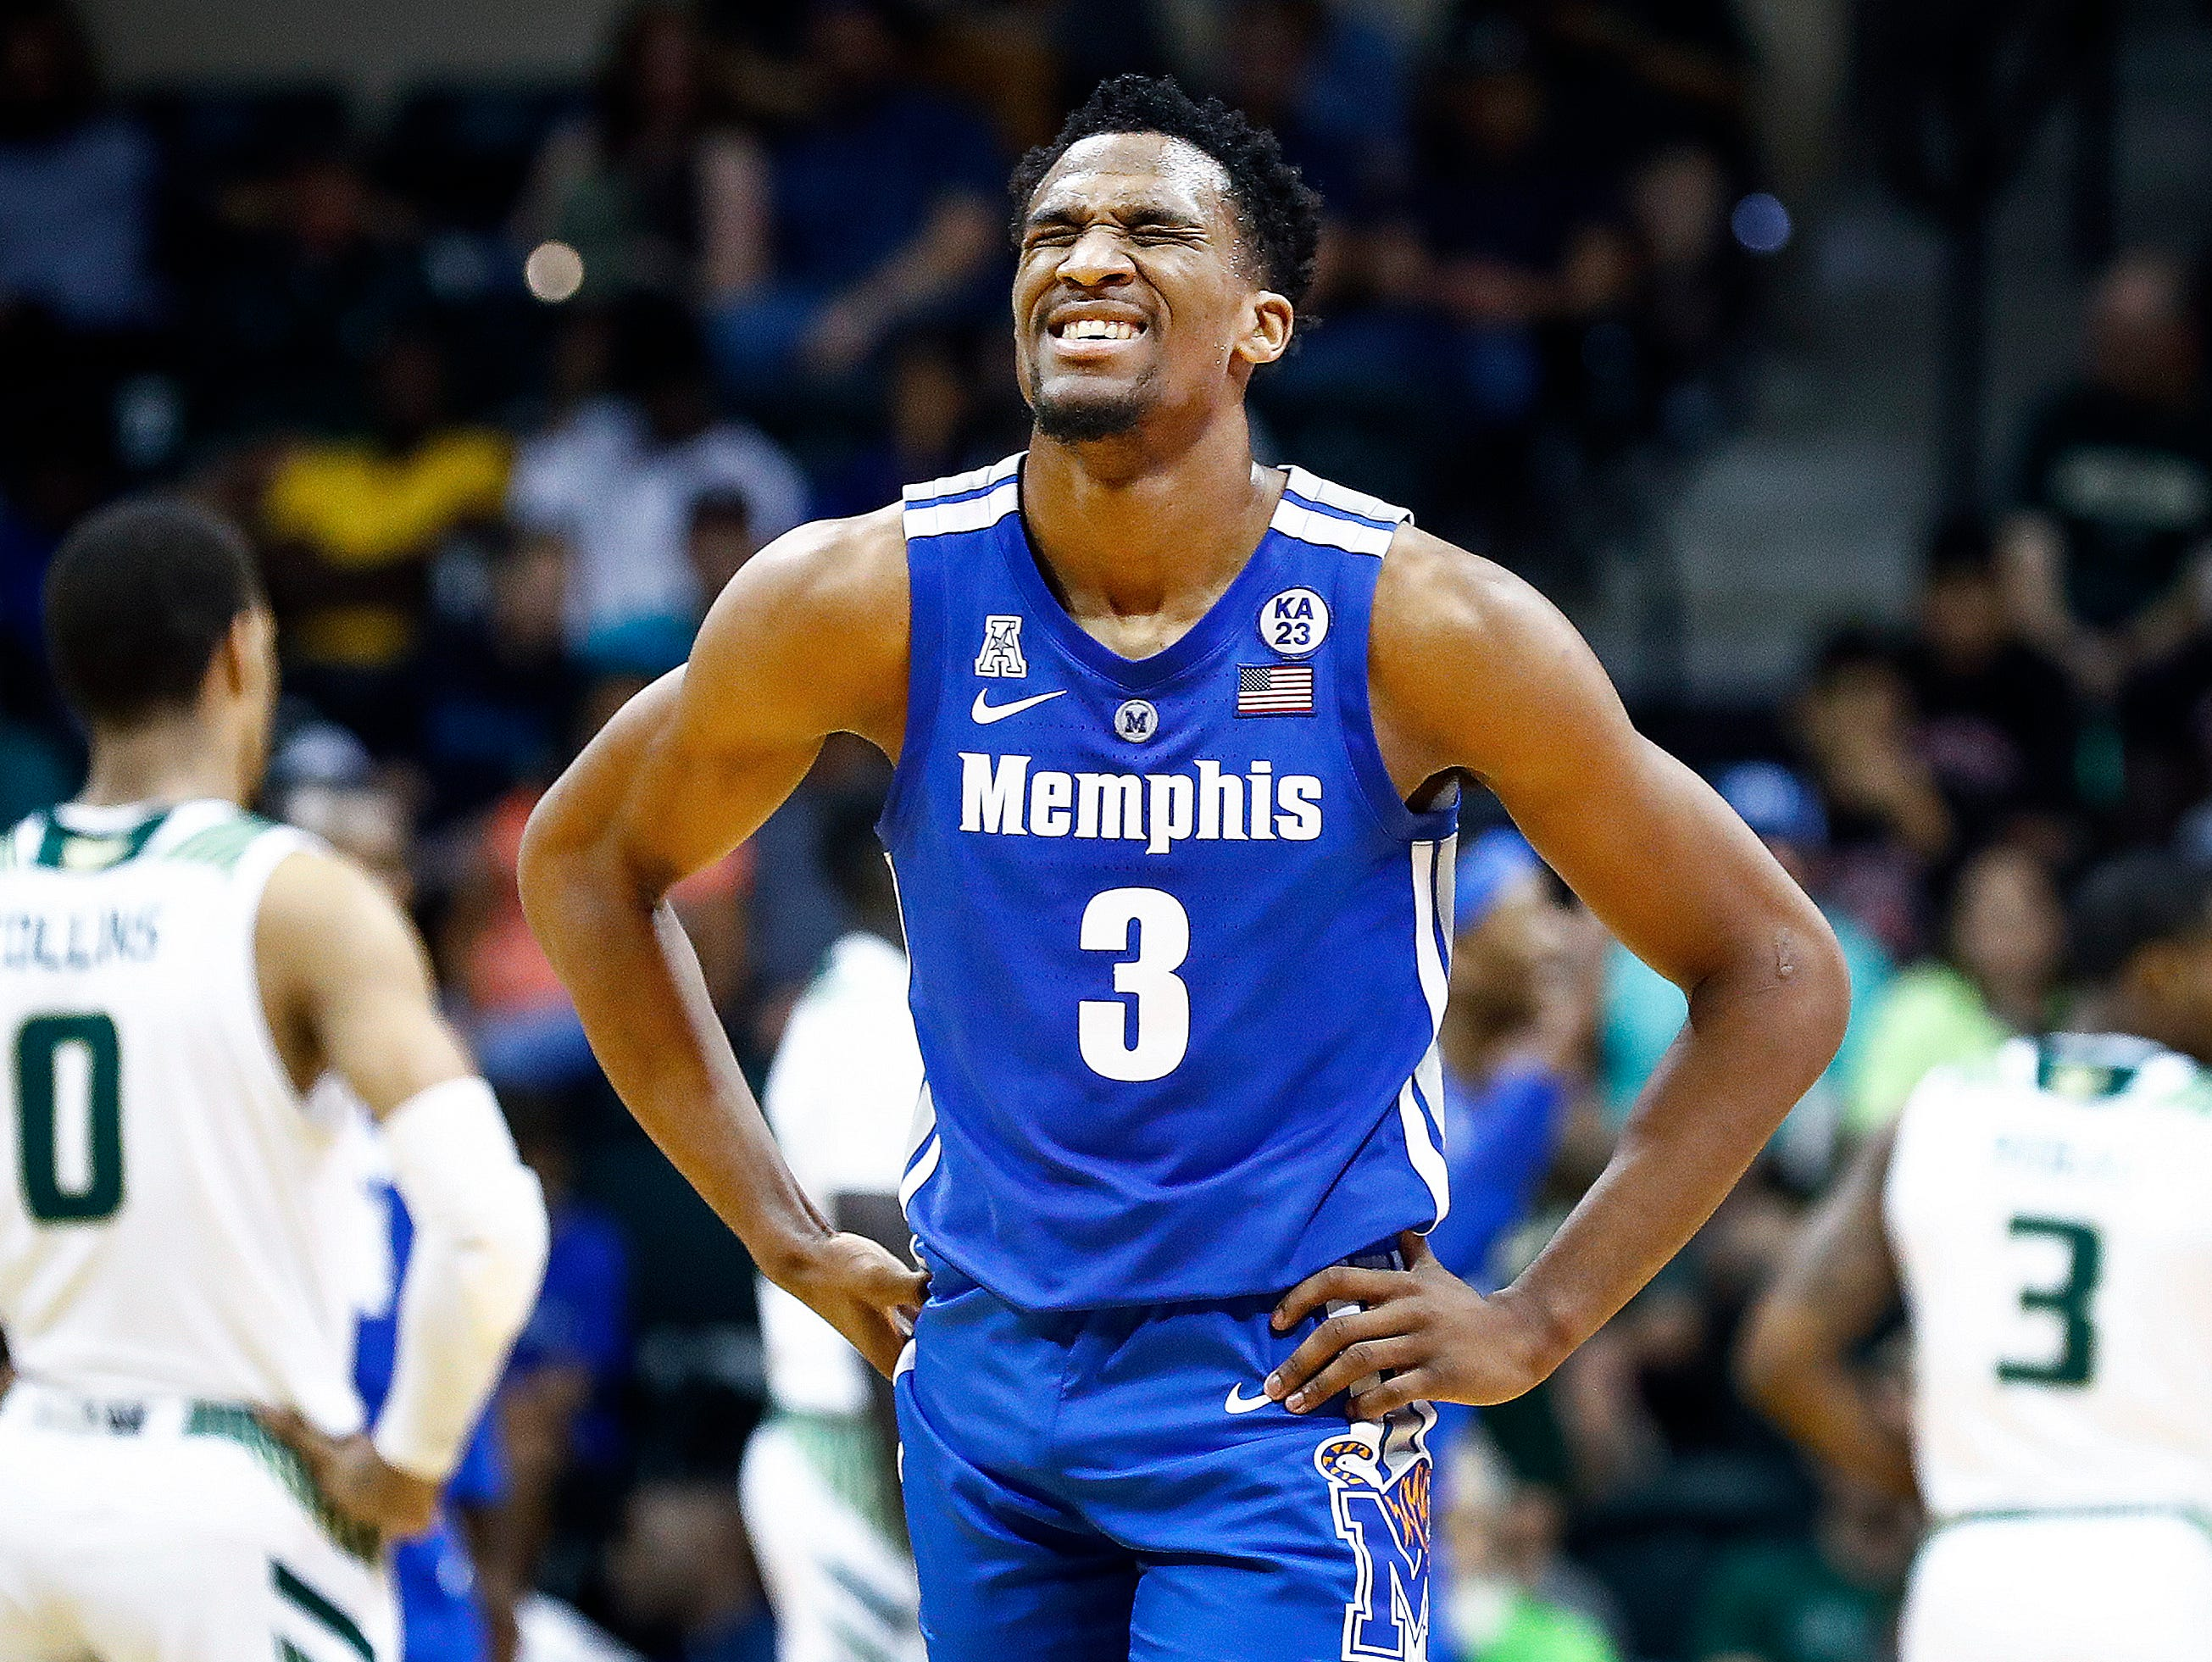 Memphis guard Jeremiah Martin grimaces during a 84-78 loss to USF in Tampa, Saturday, February 2, 2019.